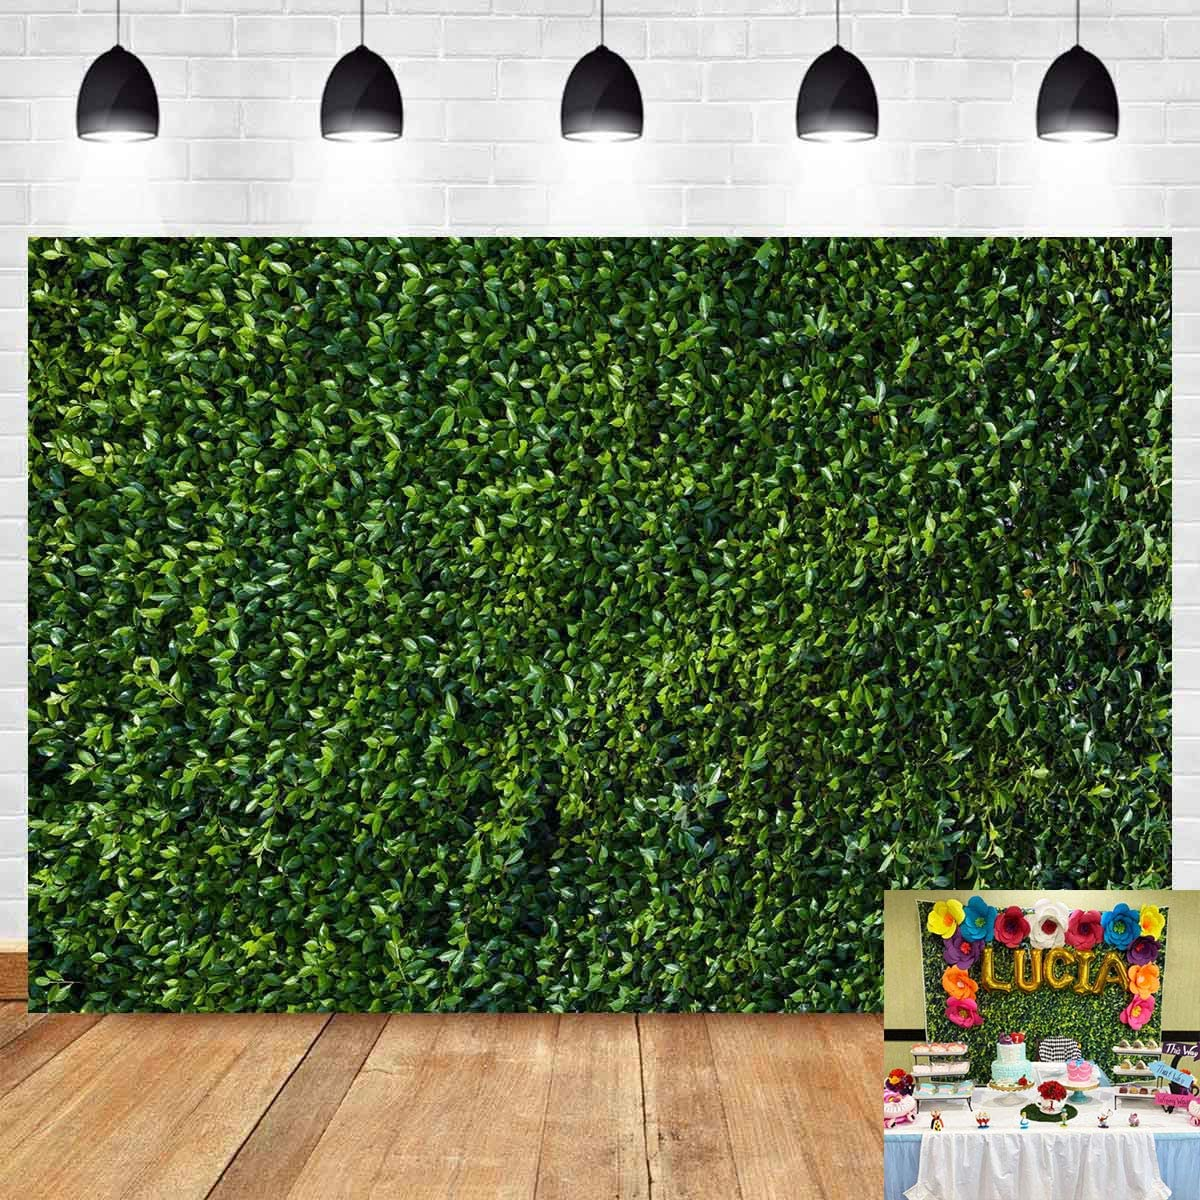 3D Green Leaves Photography Backdrops Spring Nature Outdoorsy Newborn Baby Shower Backdrop Wall Art Wedding Birthday Party Decoration Photo Background Studio Props Cake Table Booth 7x5ft